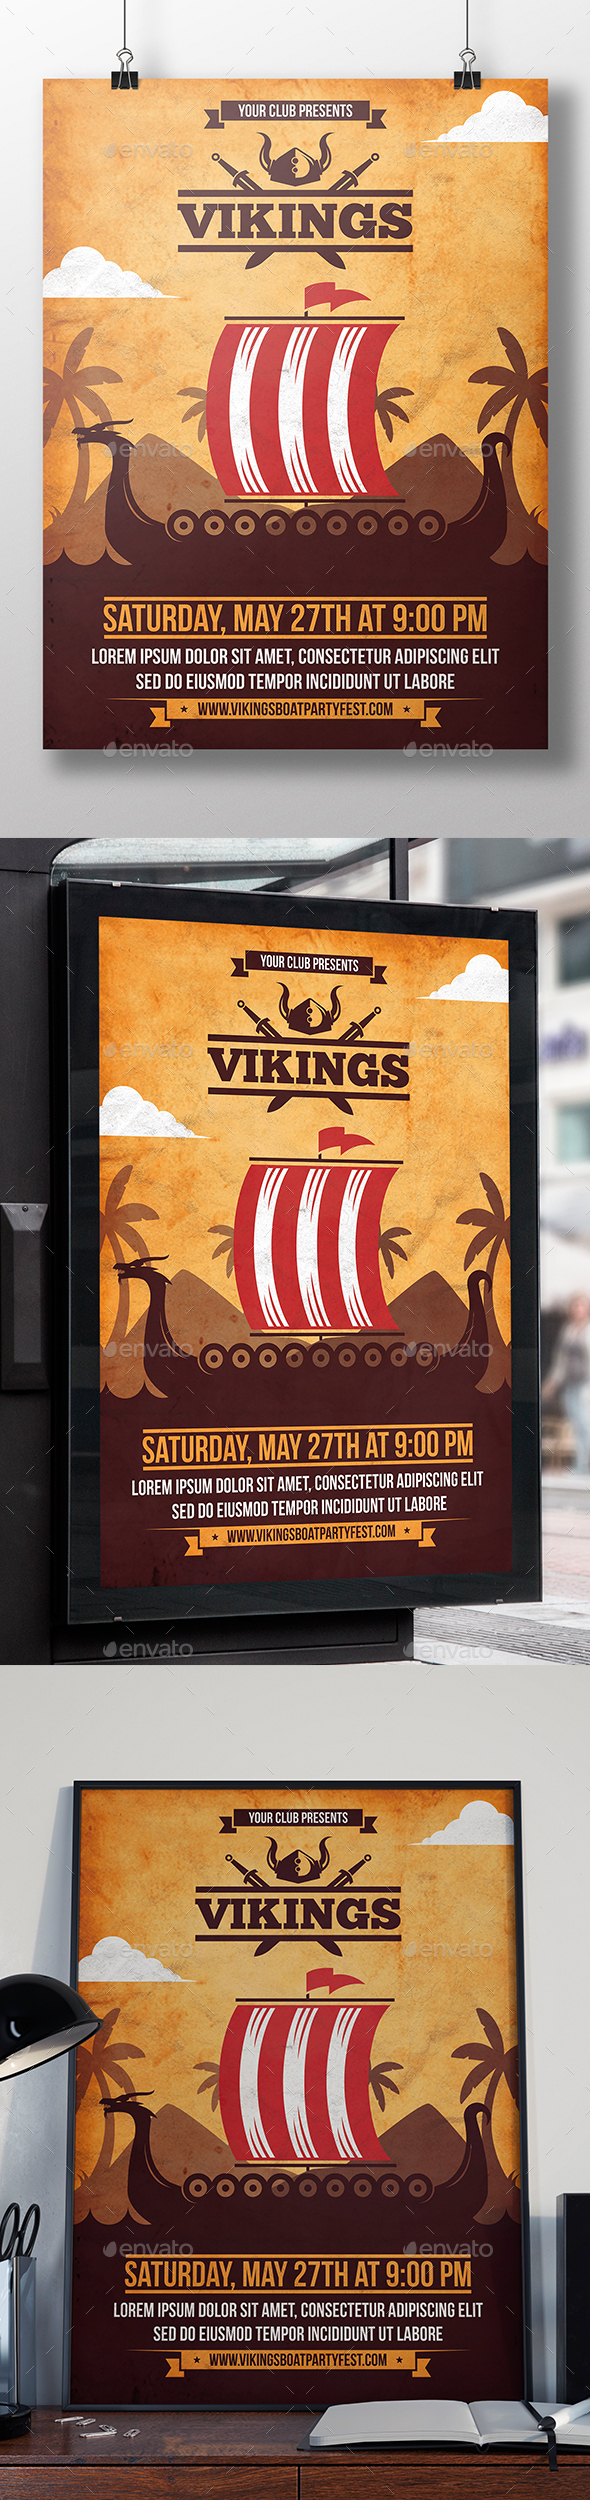 Viking Boat Flyer Template - Miscellaneous Events